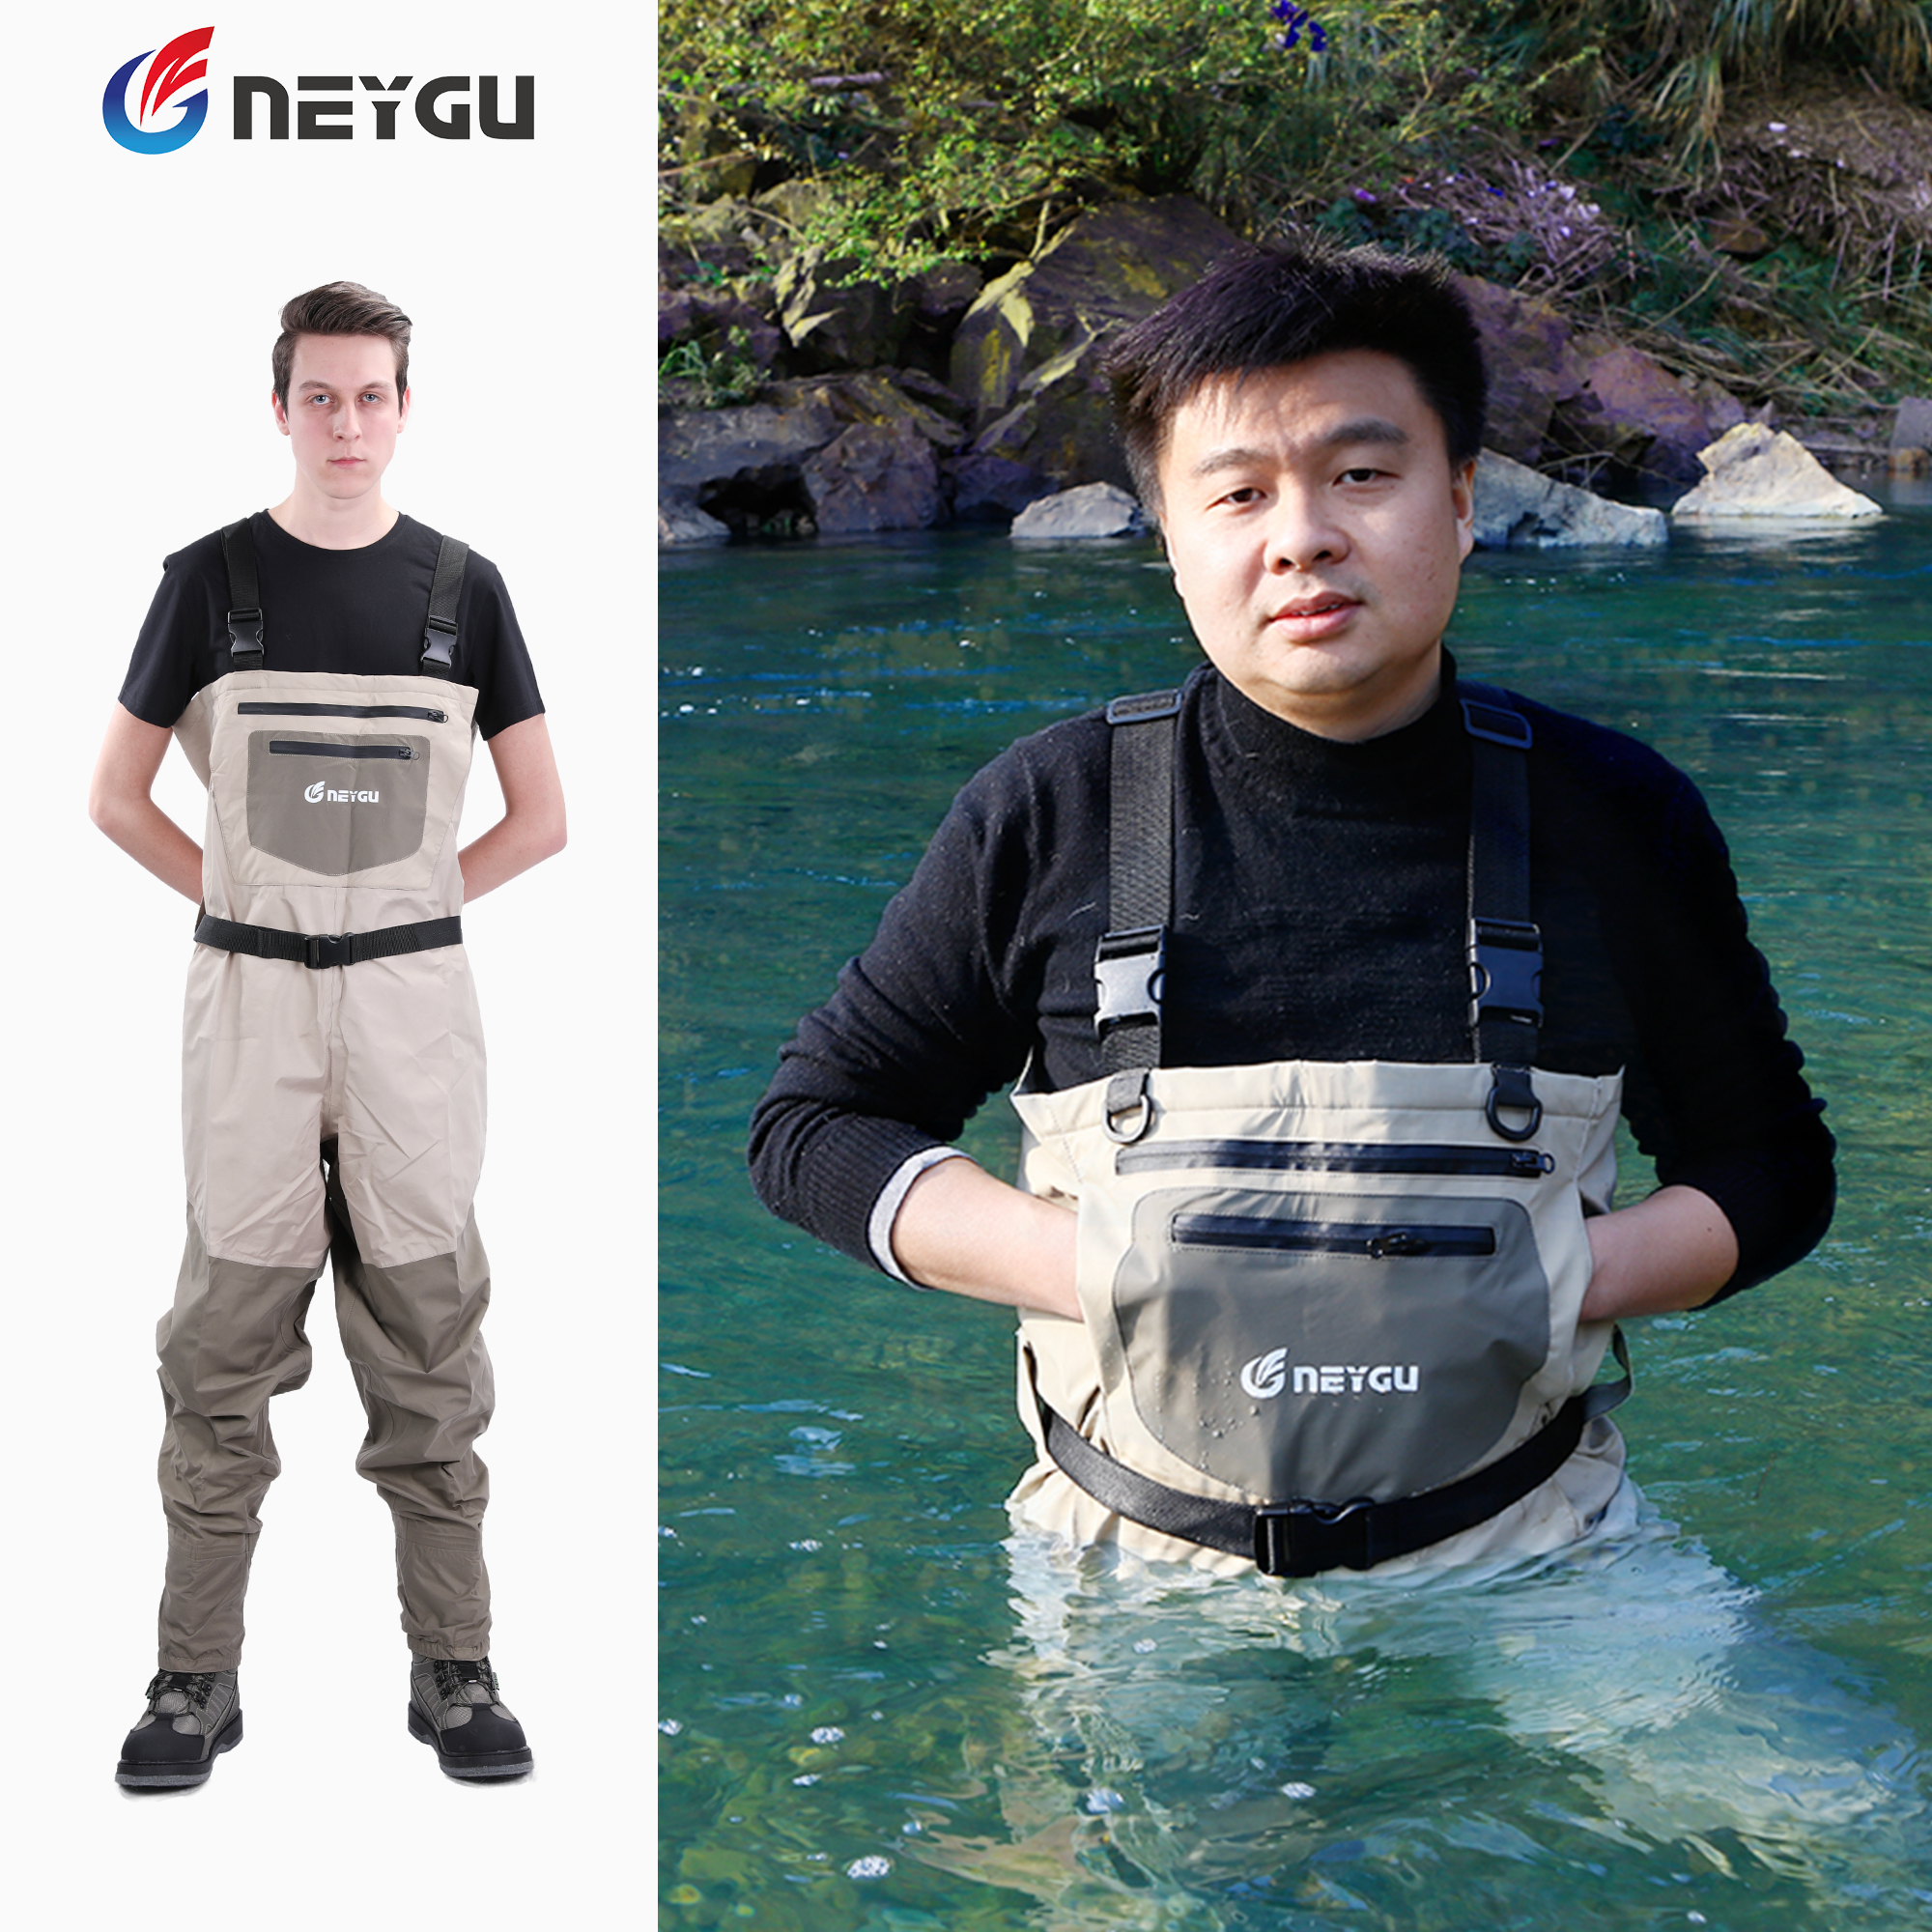 NEYGU outdoor fishing chest waders which is waterproof attached neoprene stockingfoot for hunting rafting swamp hiking